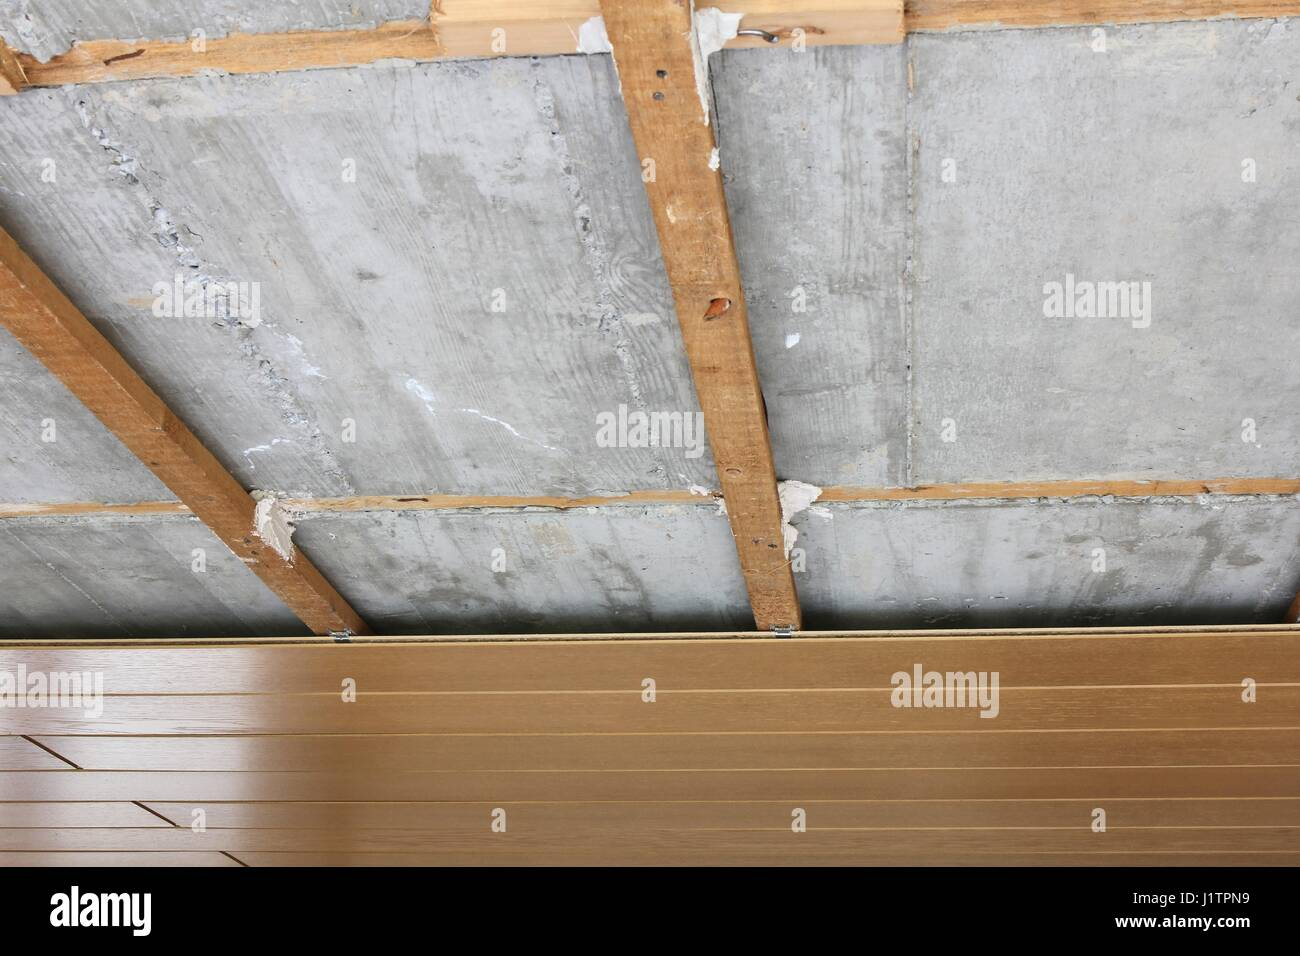 assembling / disassembling of ceiling panels - Stock Image